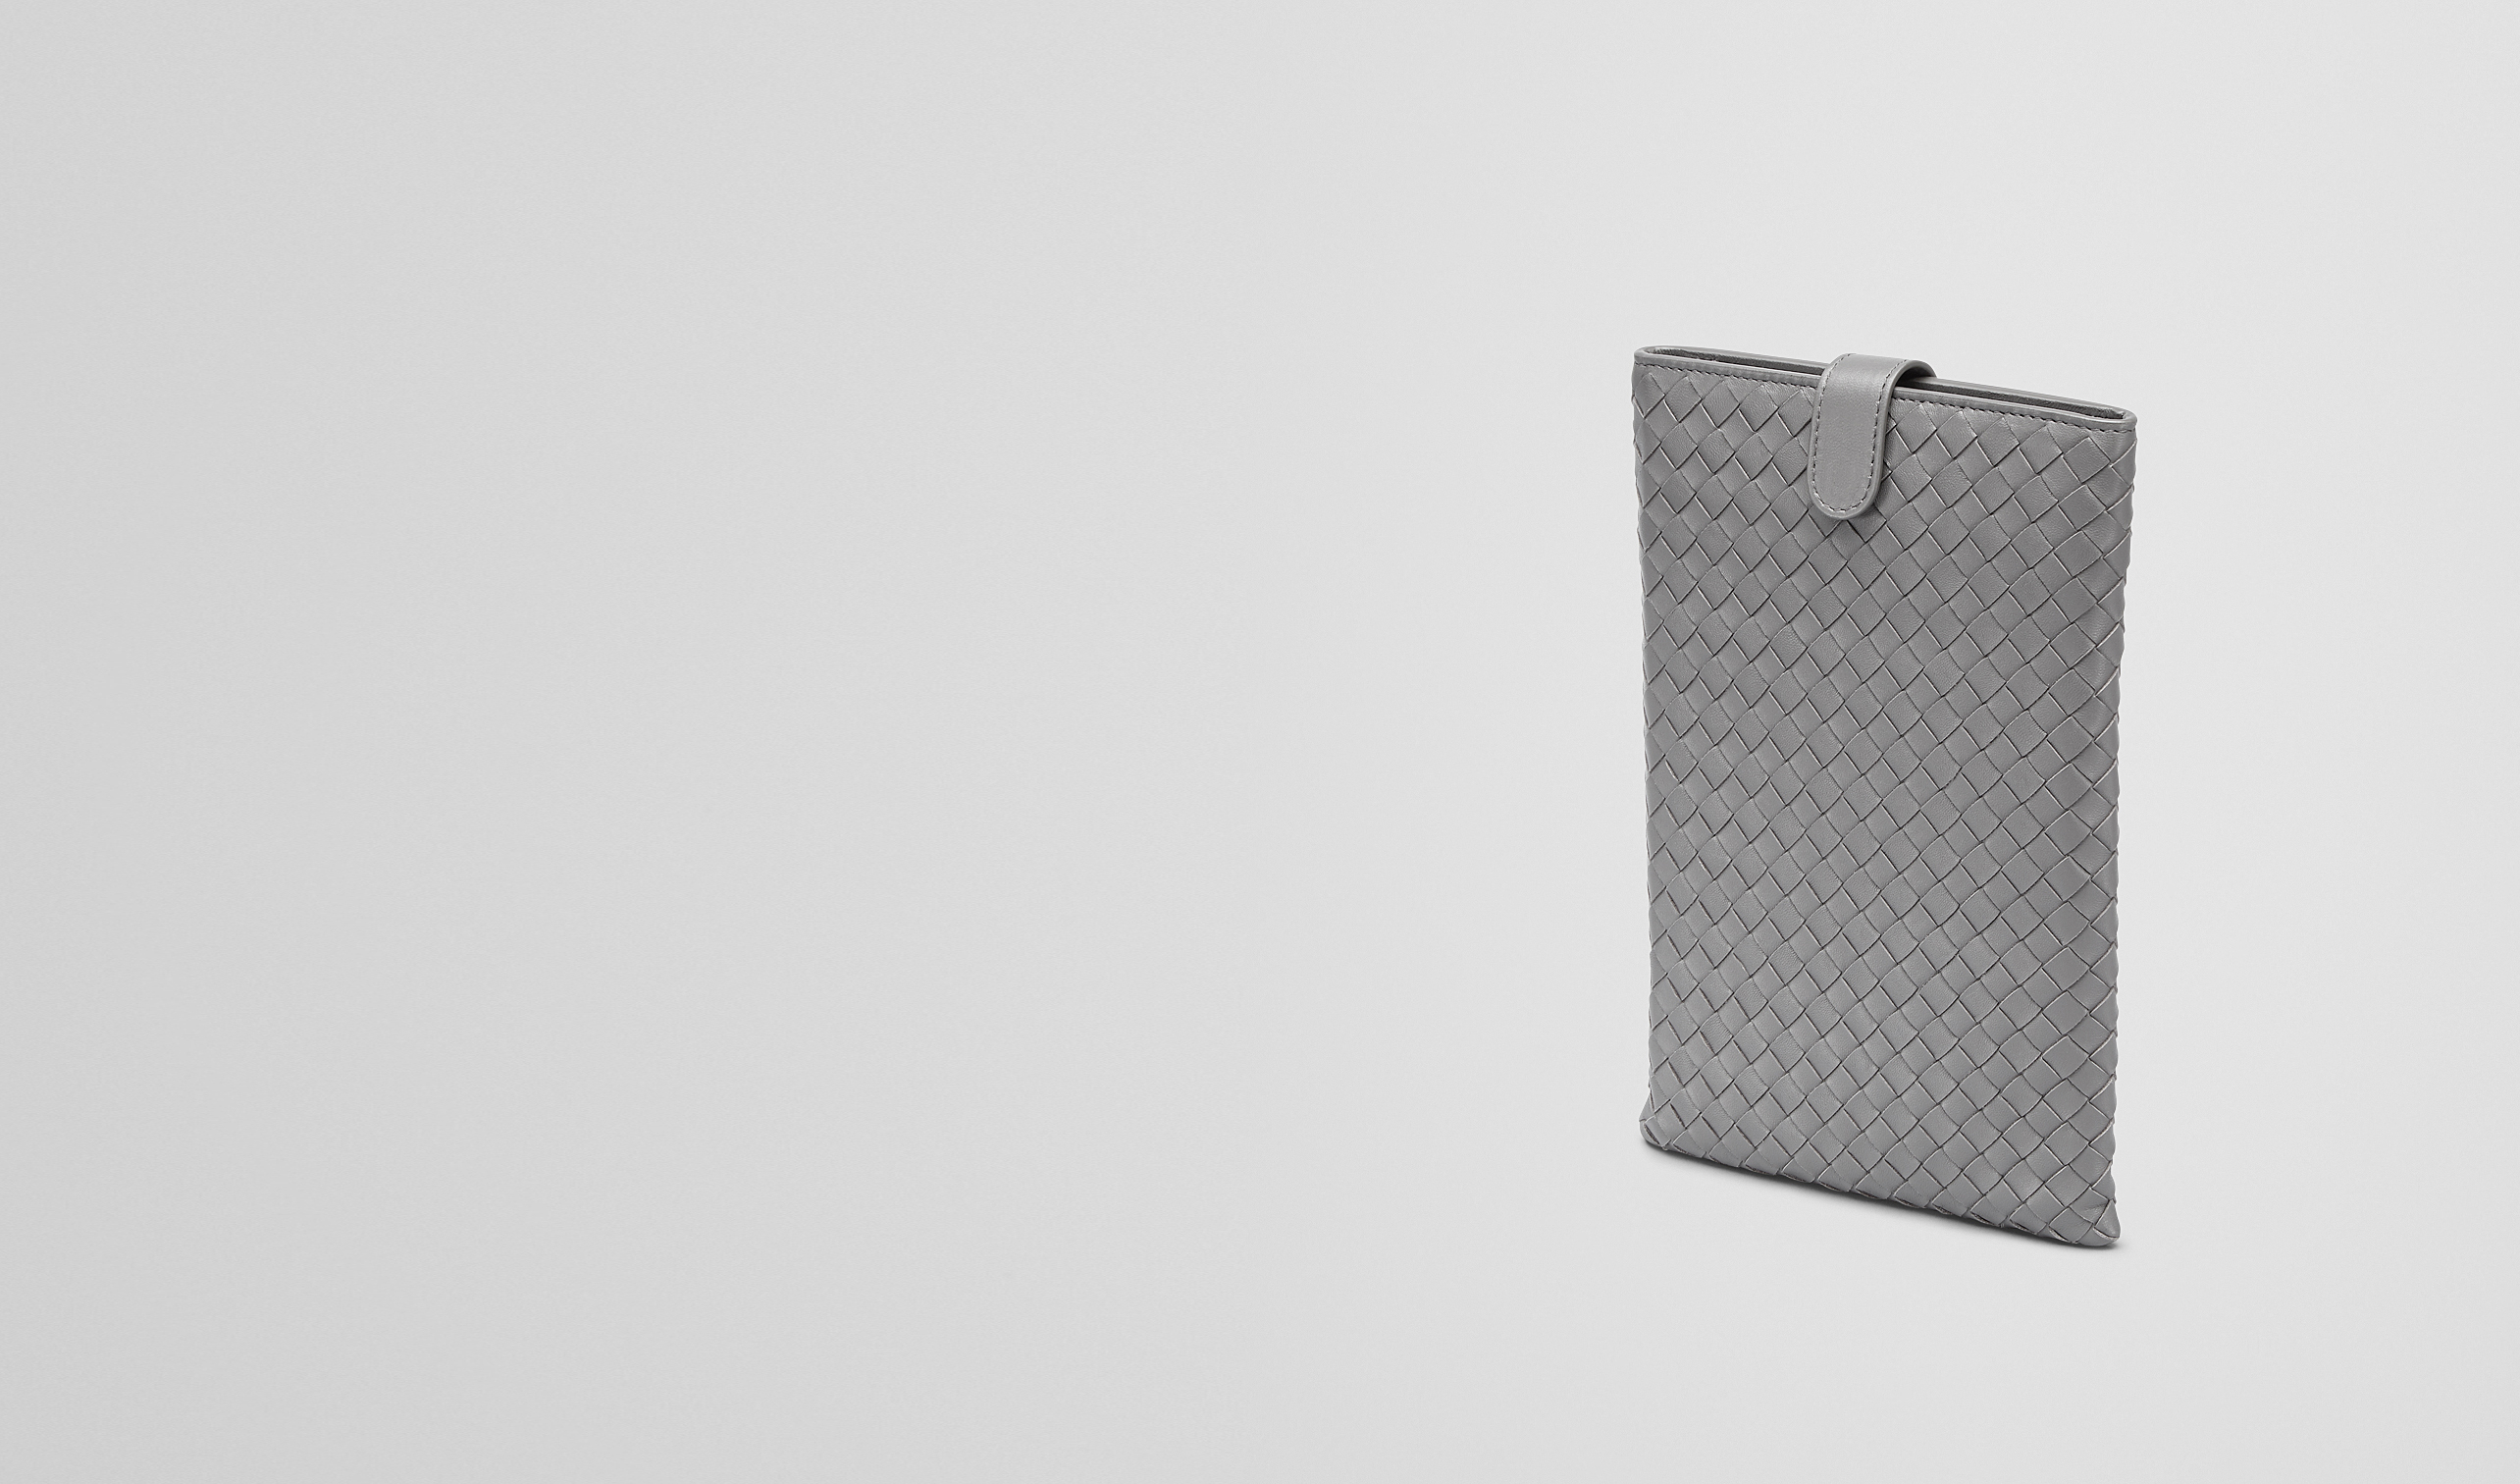 BOTTEGA VENETA Other Leather Accessory E NEW LIGHT GREY INTRECCIATO NAPPA MINI IPAD CASE pl